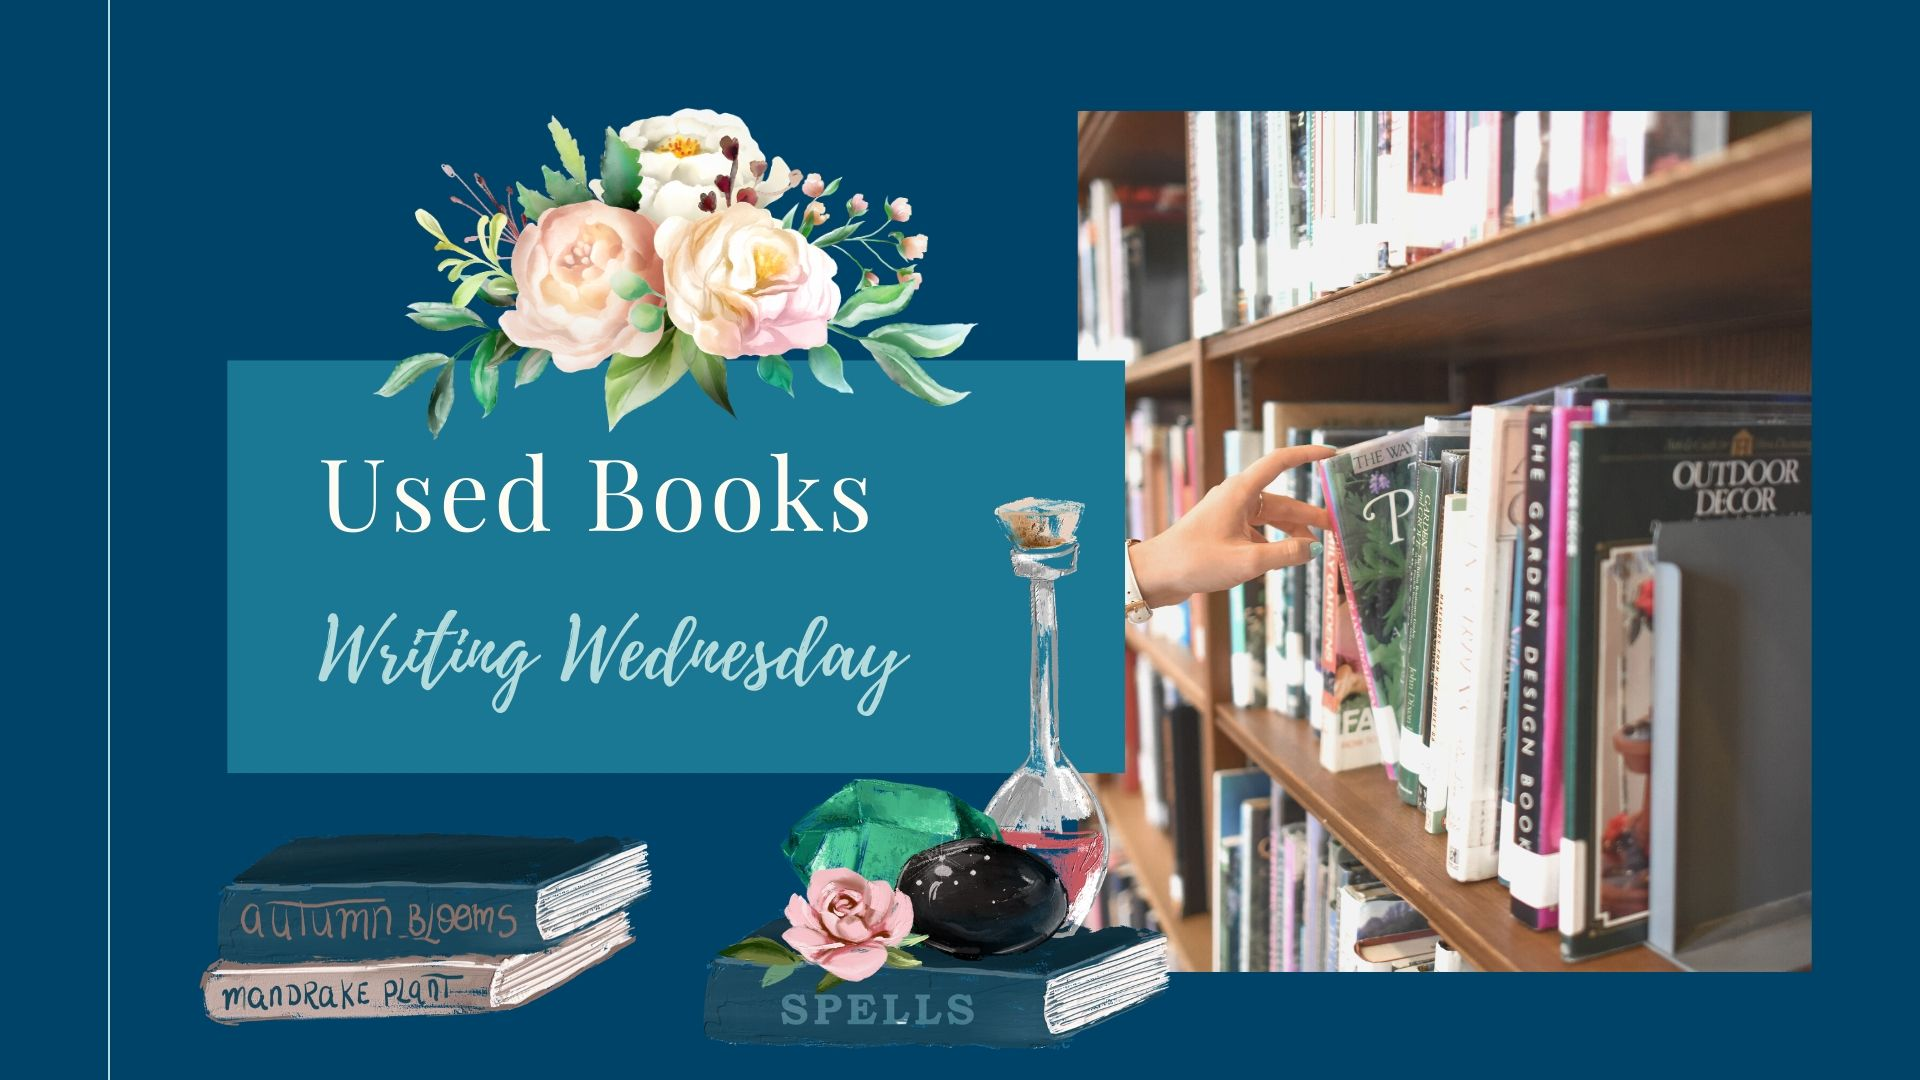 Writing Wednesday: Used Books